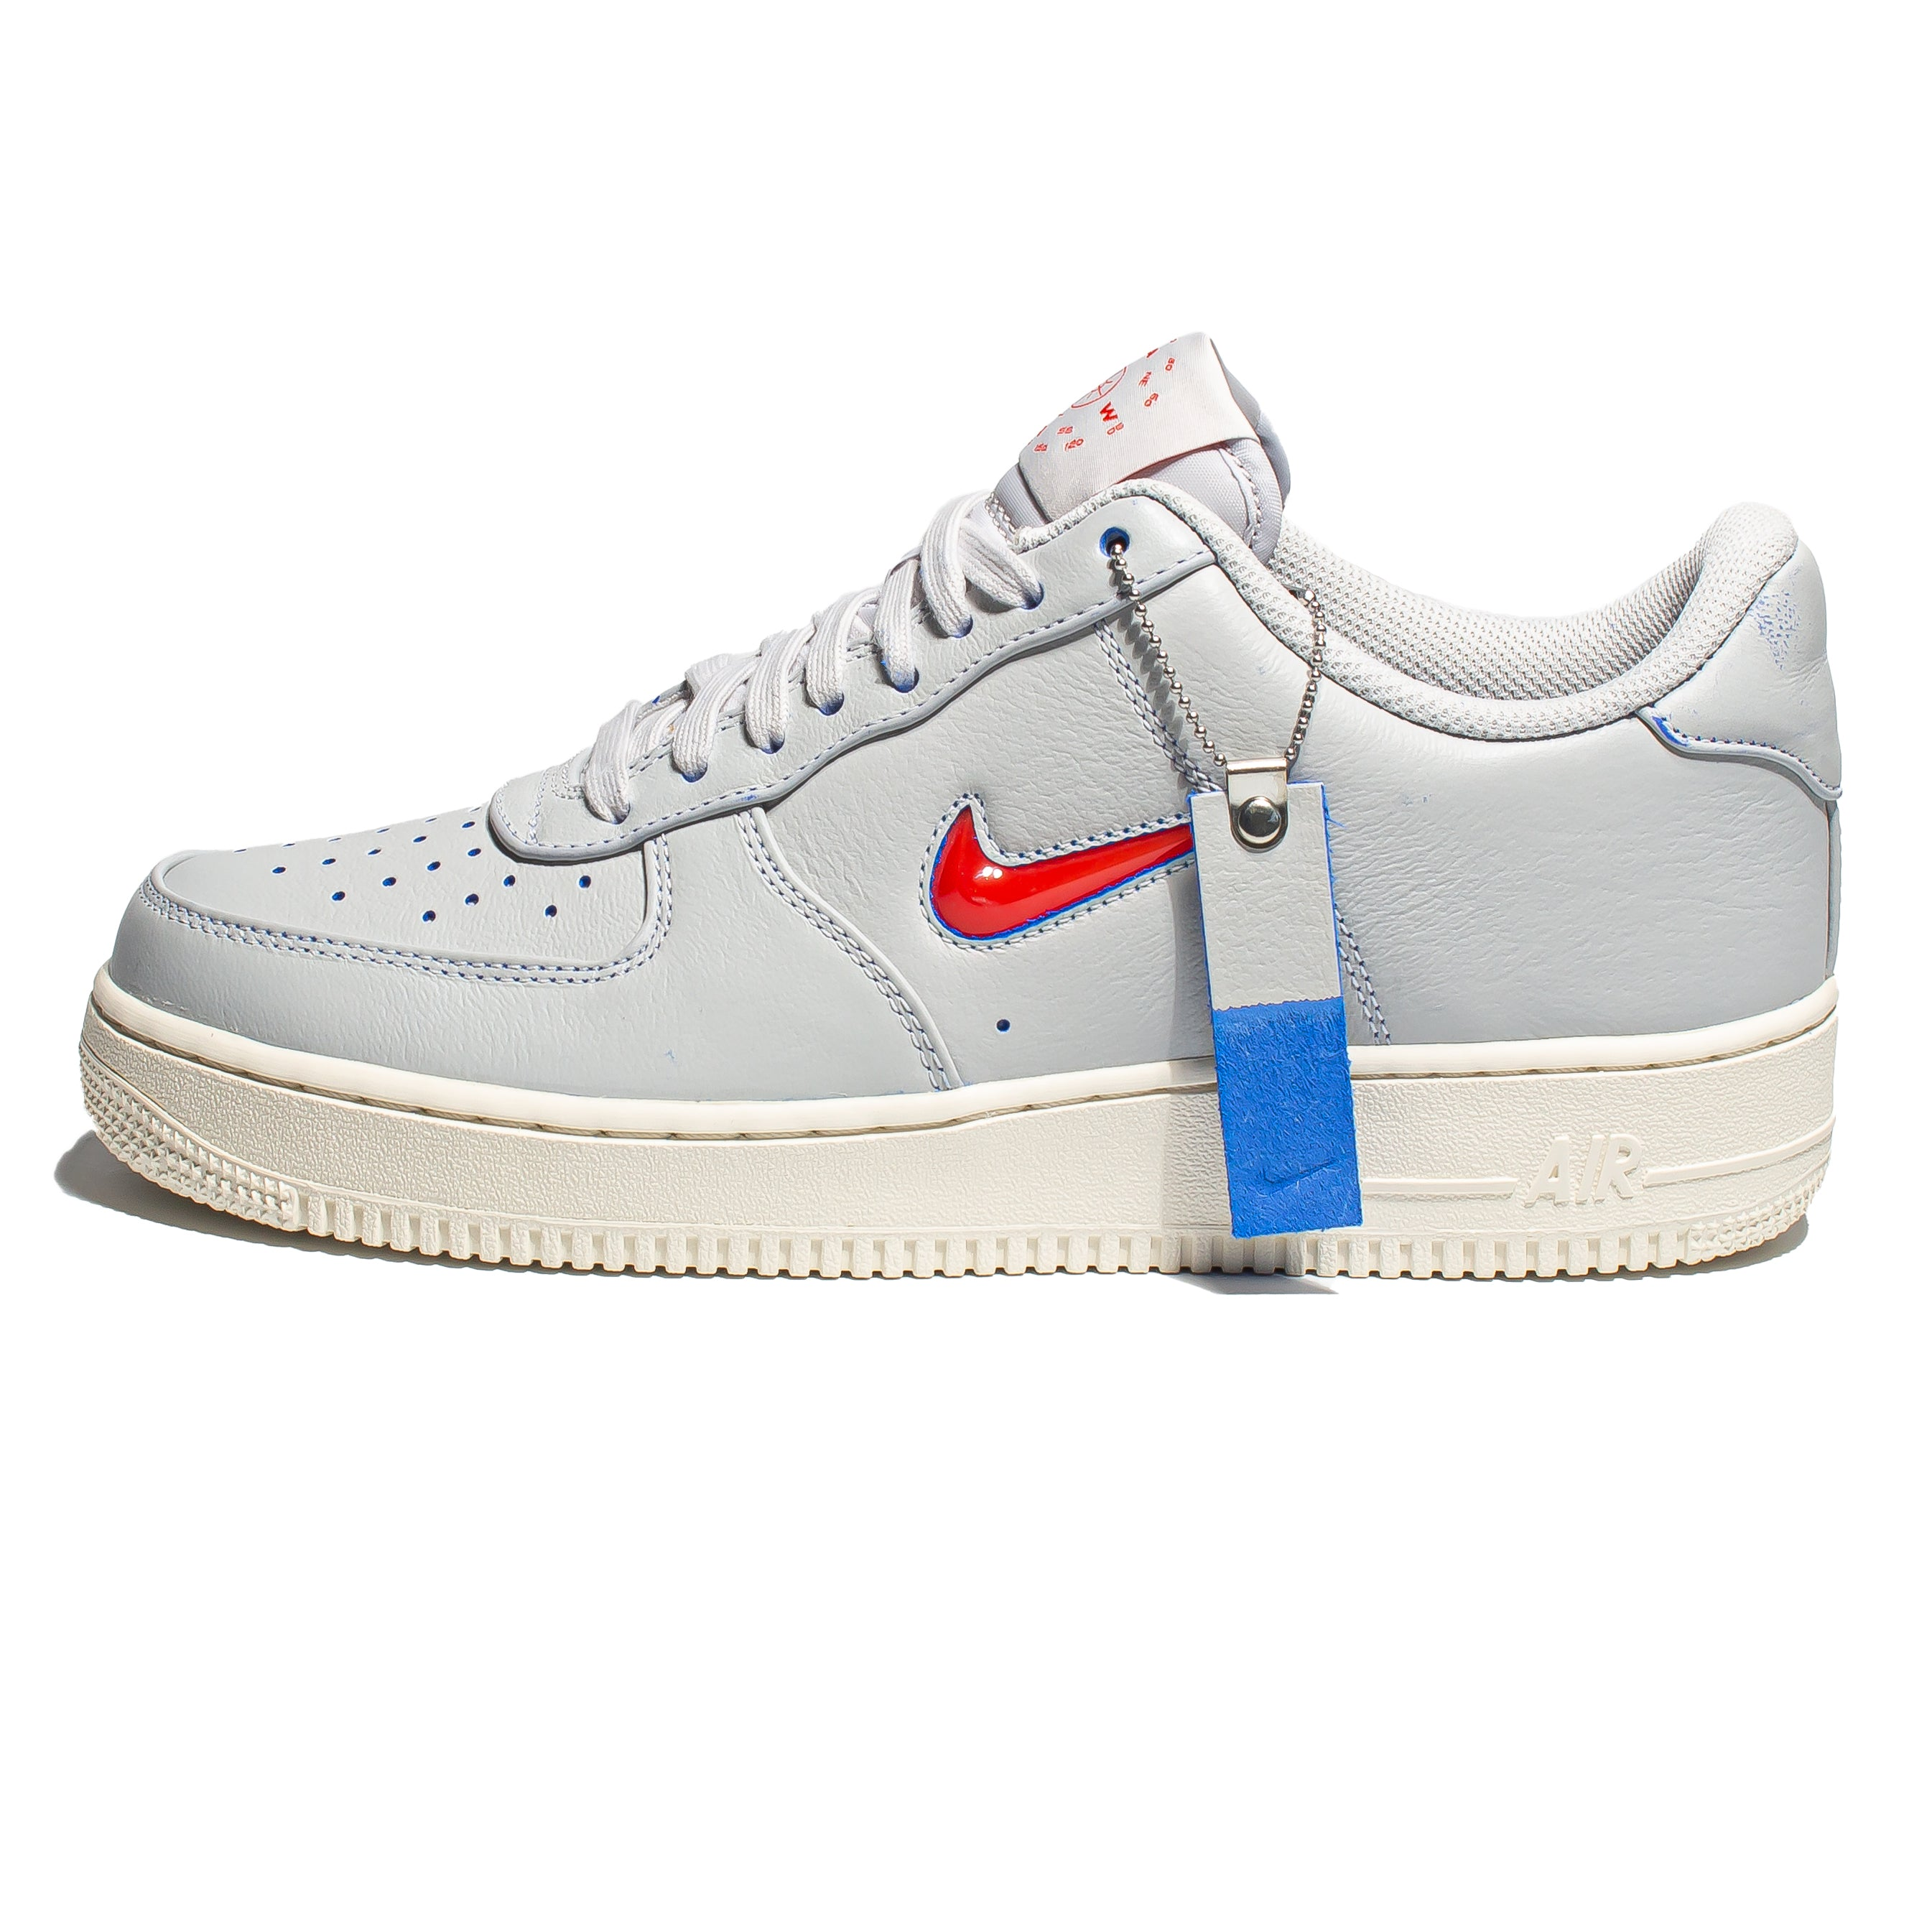 Nike Air Force 1 '07 Jewel PRM 'Home & Away'